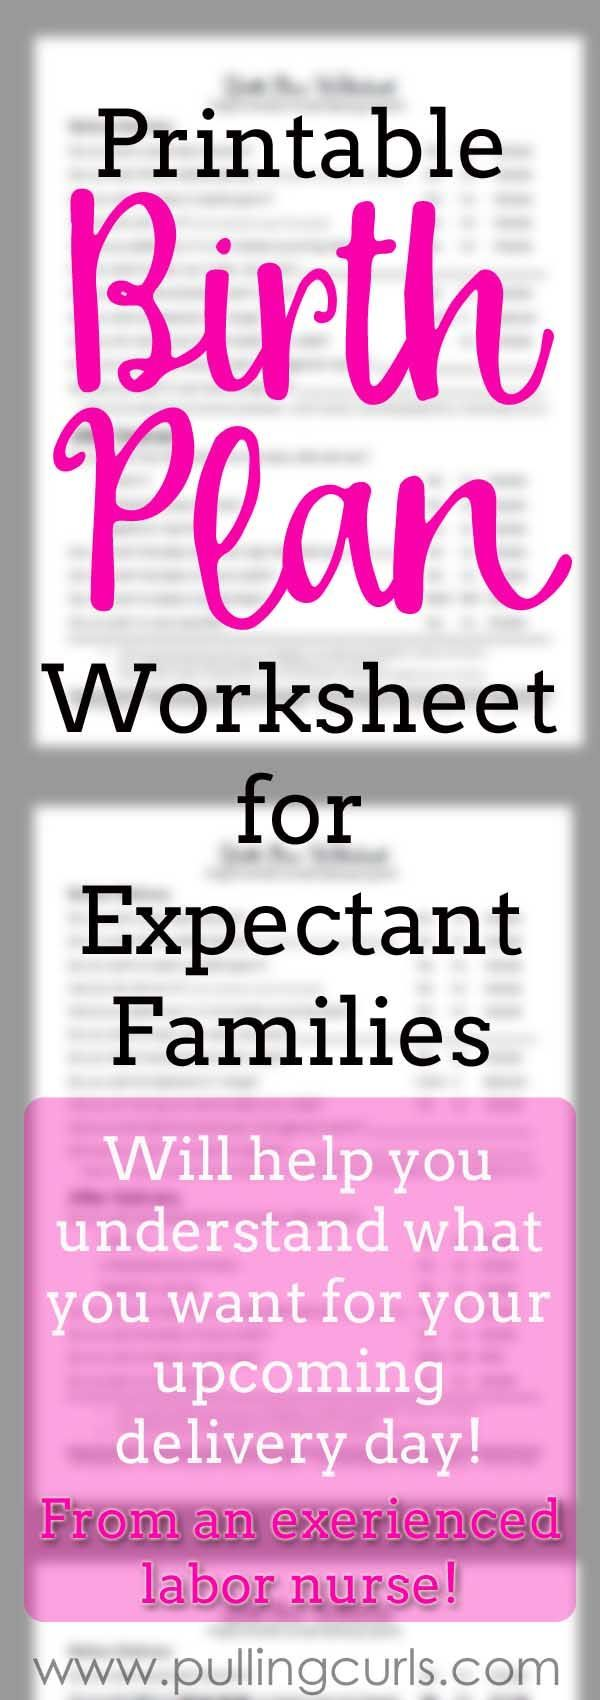 Worksheets Birth Plan Worksheet best 25 birth plans ideas on pinterest birthing plan natural worksheet flexible for success